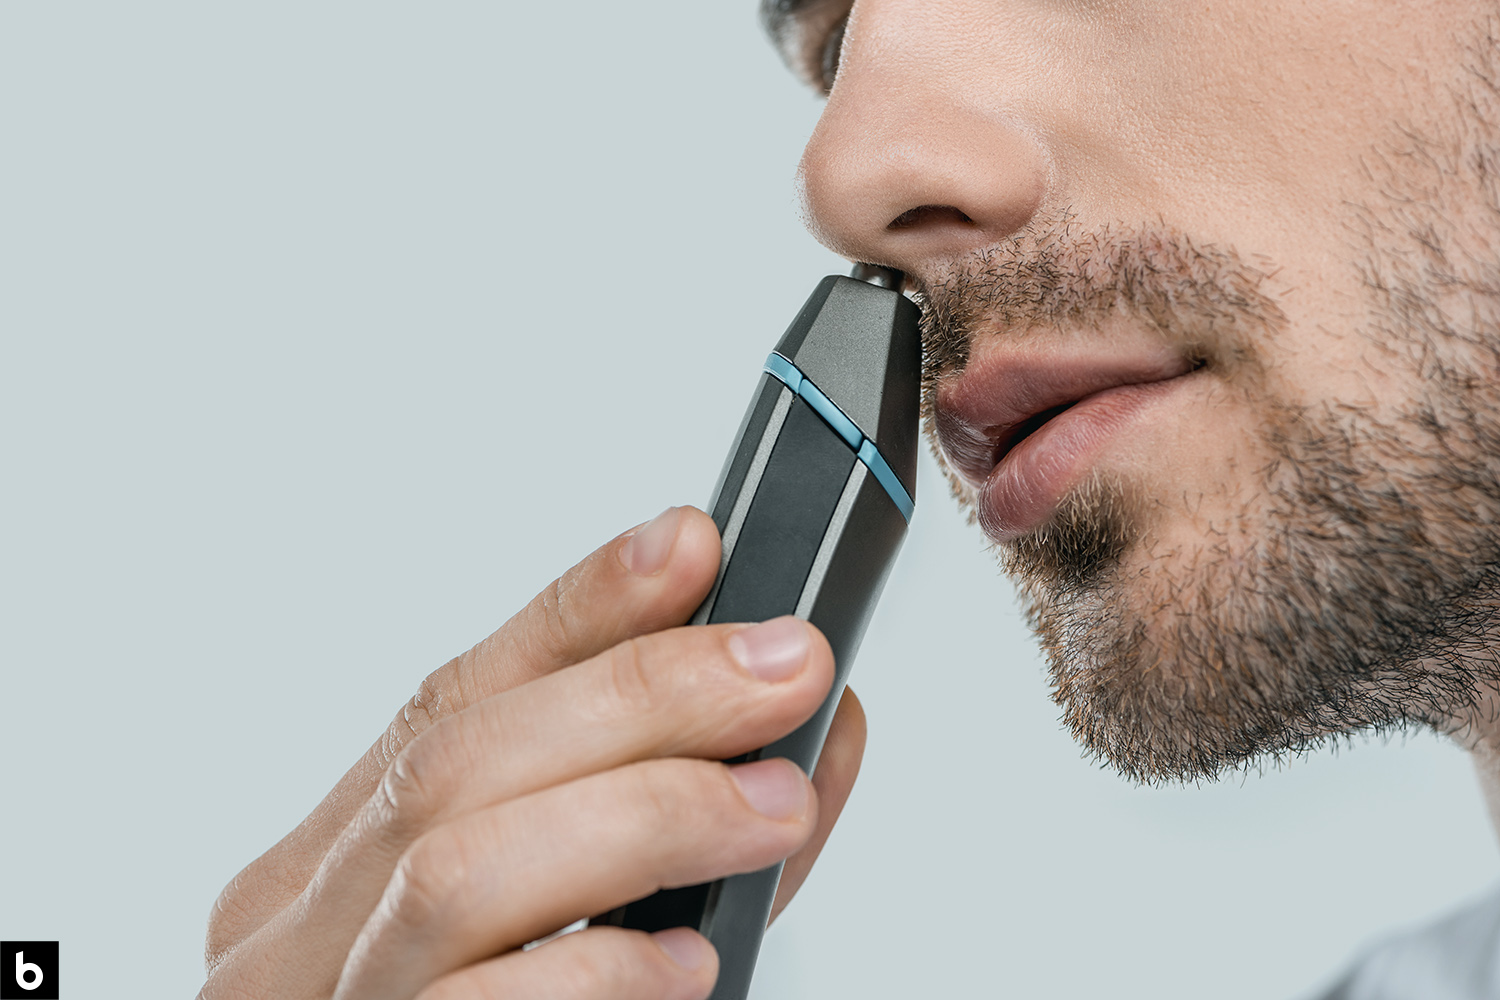 This is the cover photo for our Best Nose Hair Trimmer article. It features a man with facial scruff using a black and blue nose hair trimmer to shave his nose.